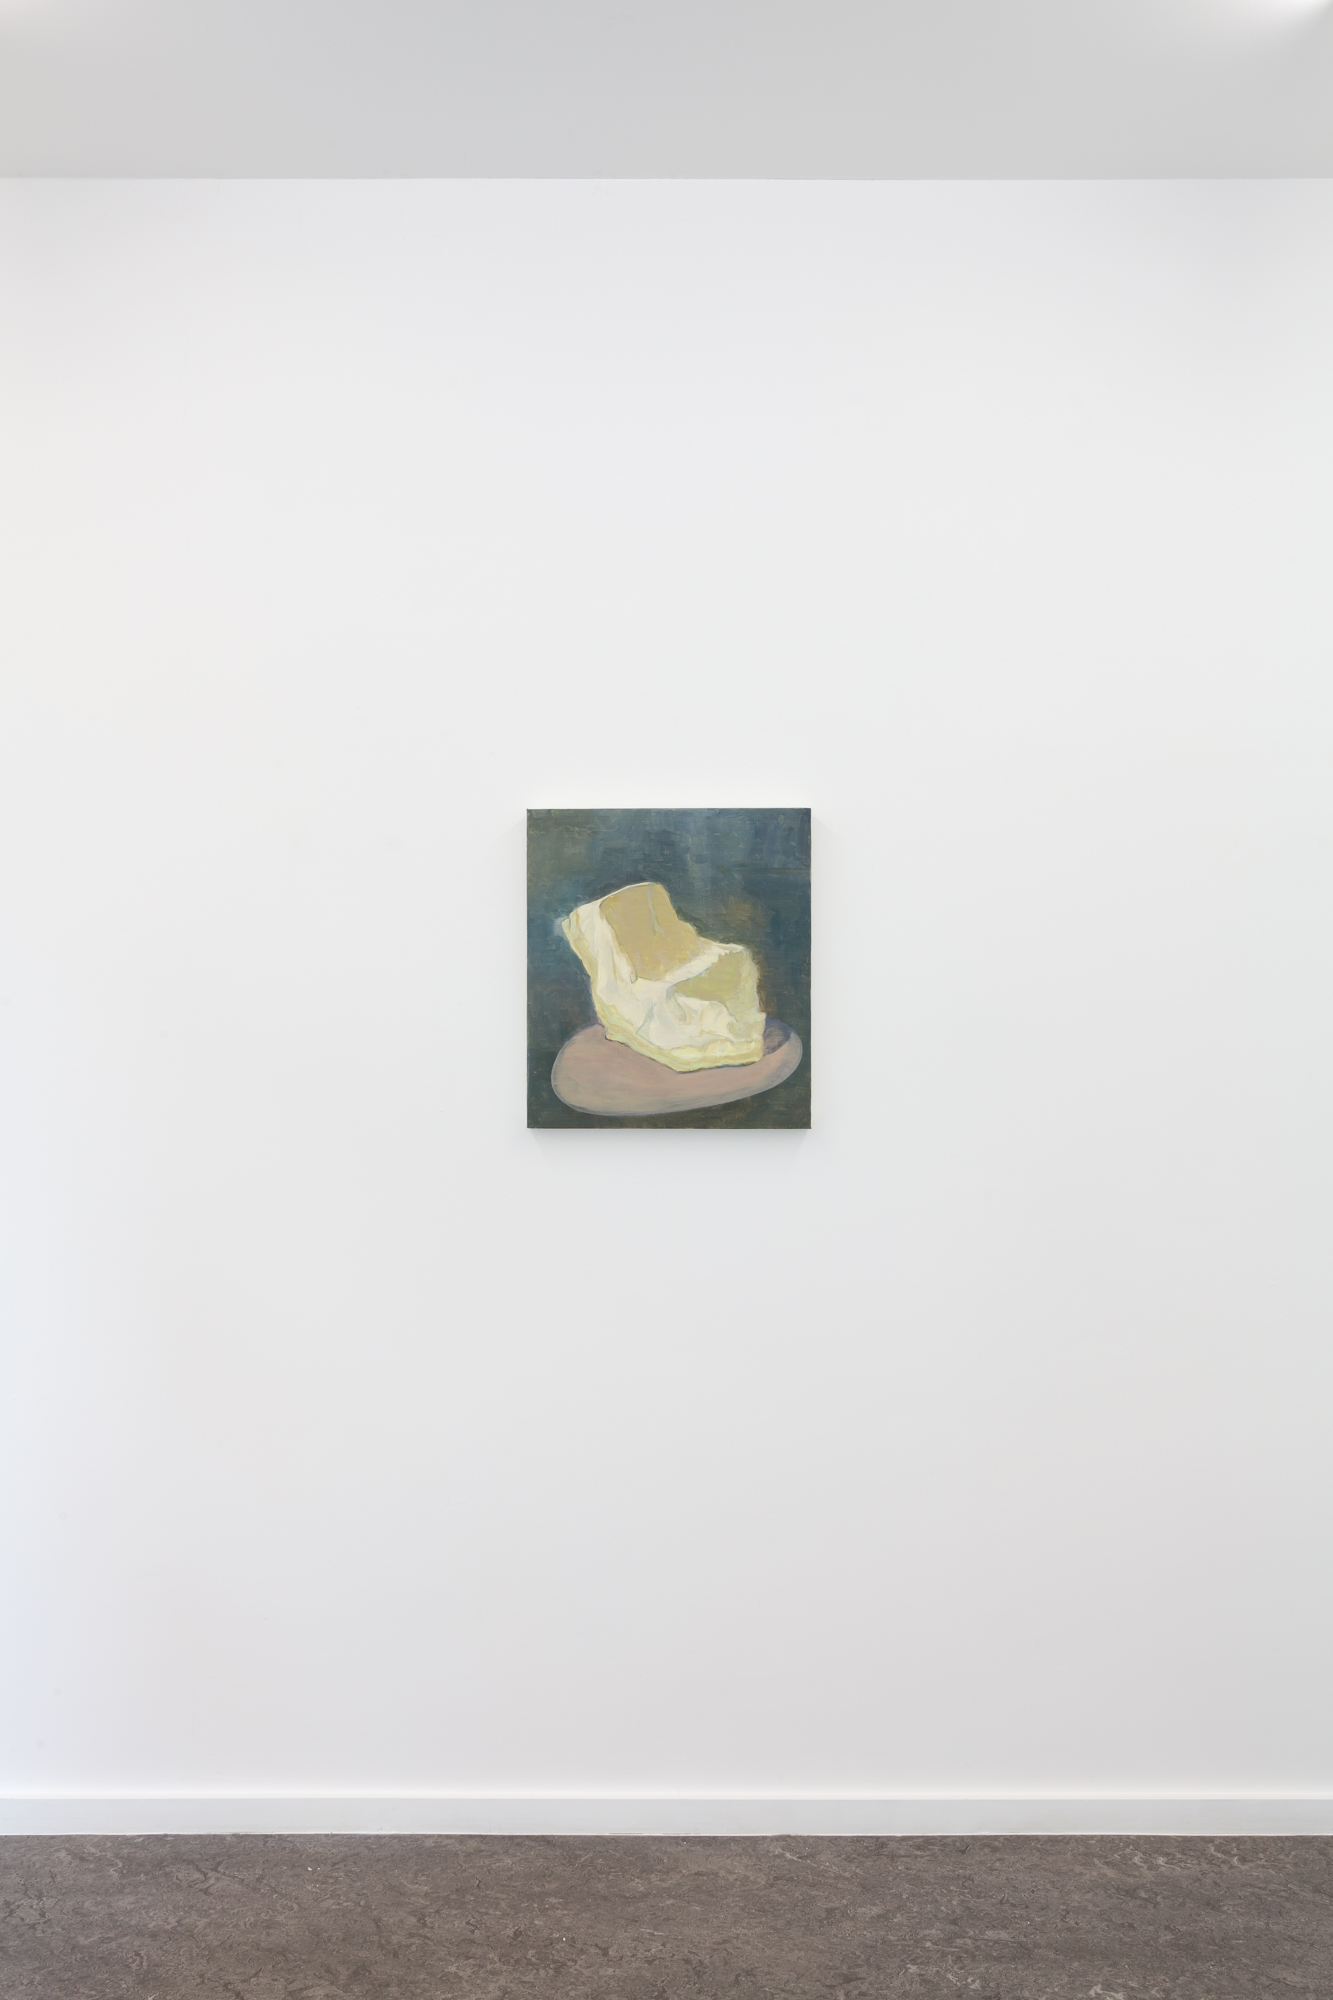 Guy Van Bossche, Chair Hidden by an Inflatable Object, 2020 Oil on canvas 53,7 x 47,8 cm, Photo by Pieter Huybrechts.